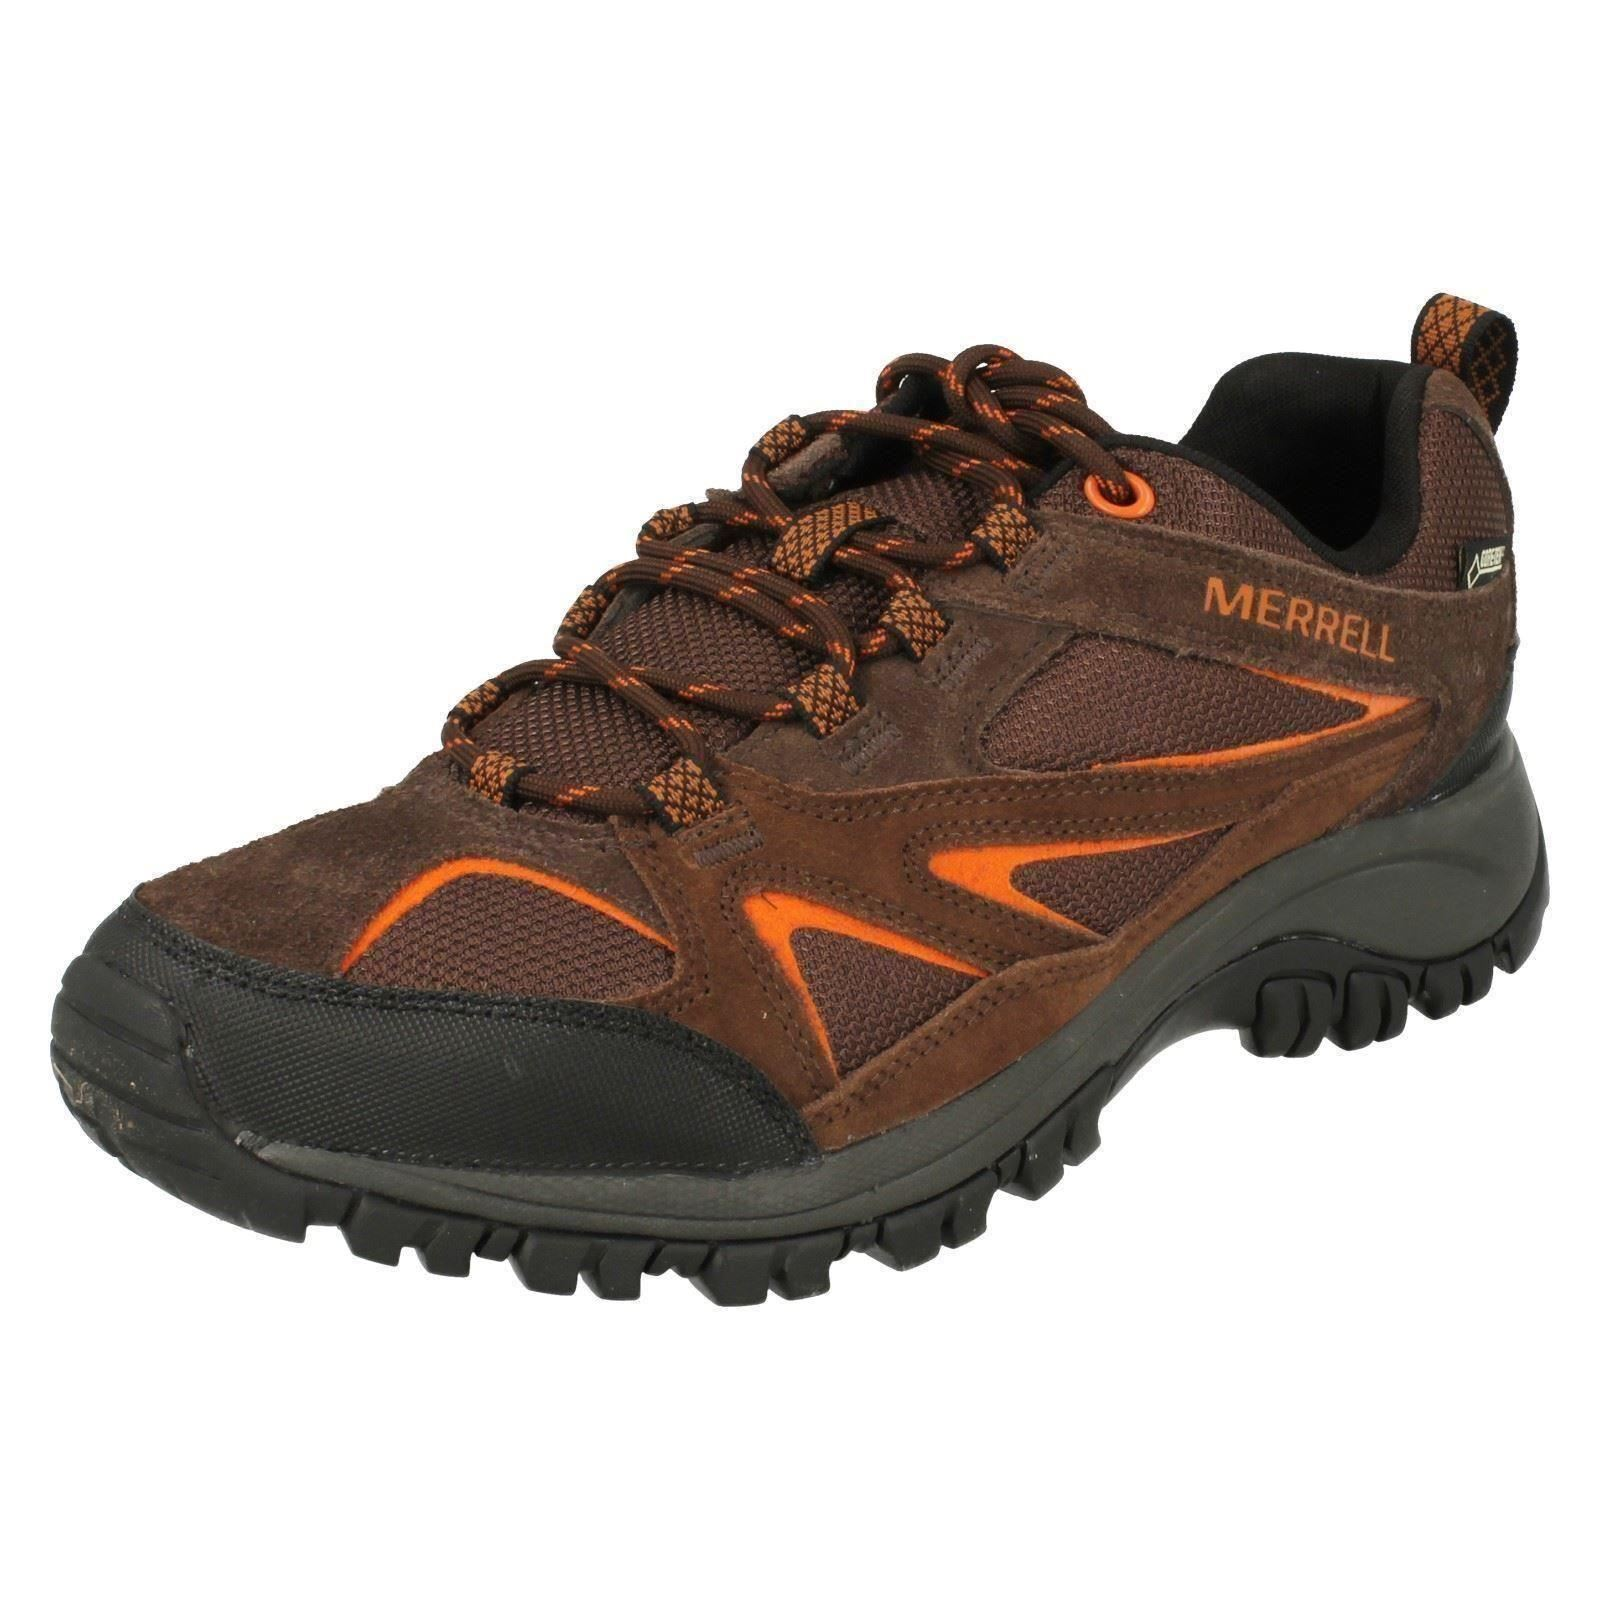 hommes MERRELL PHOENIX BLUFF GORE-TEX WATERPROOF OUTDOOR WALKING HIKINGChaussures